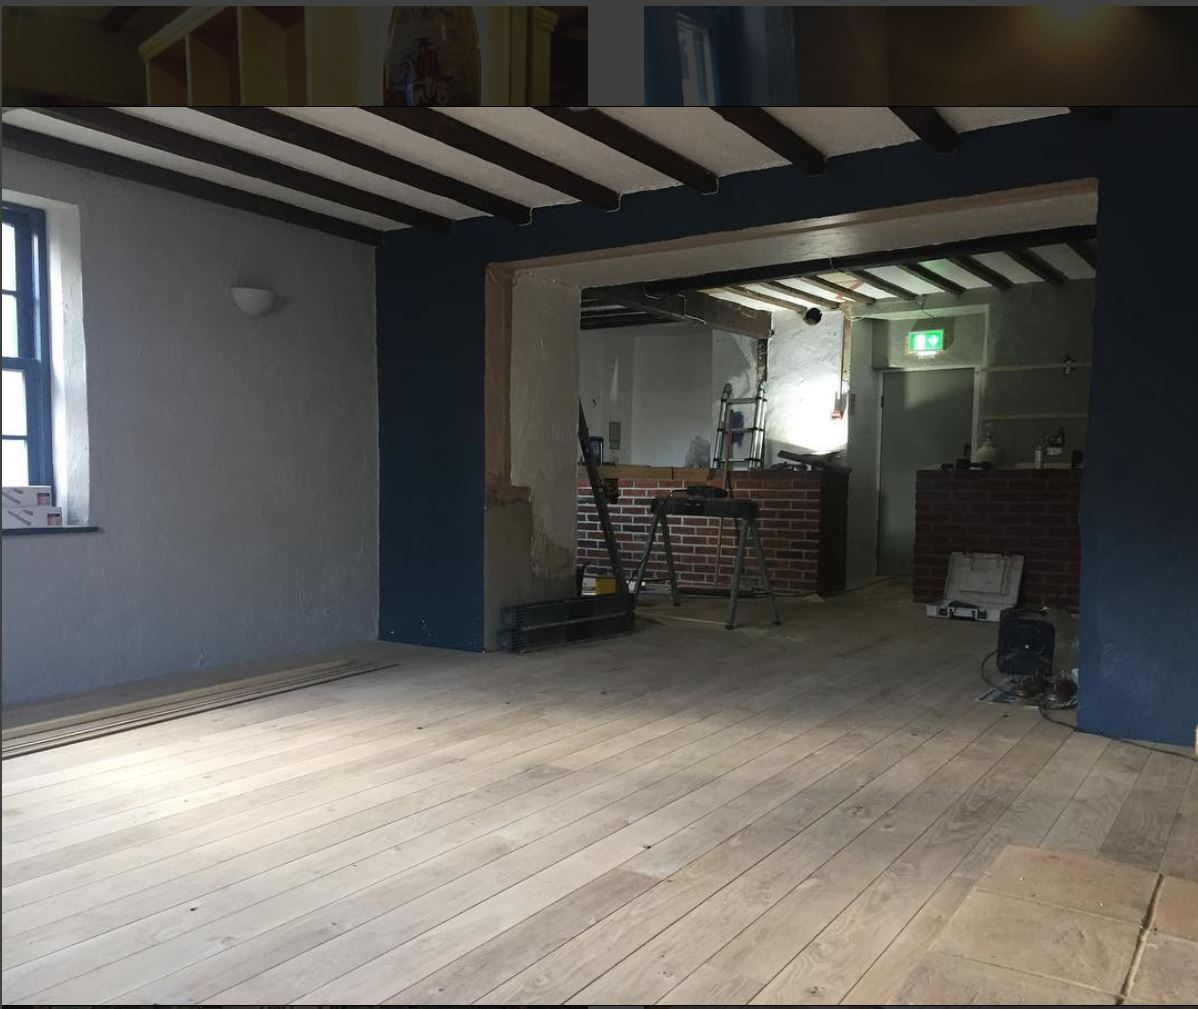 The Barsham Arms Renovate